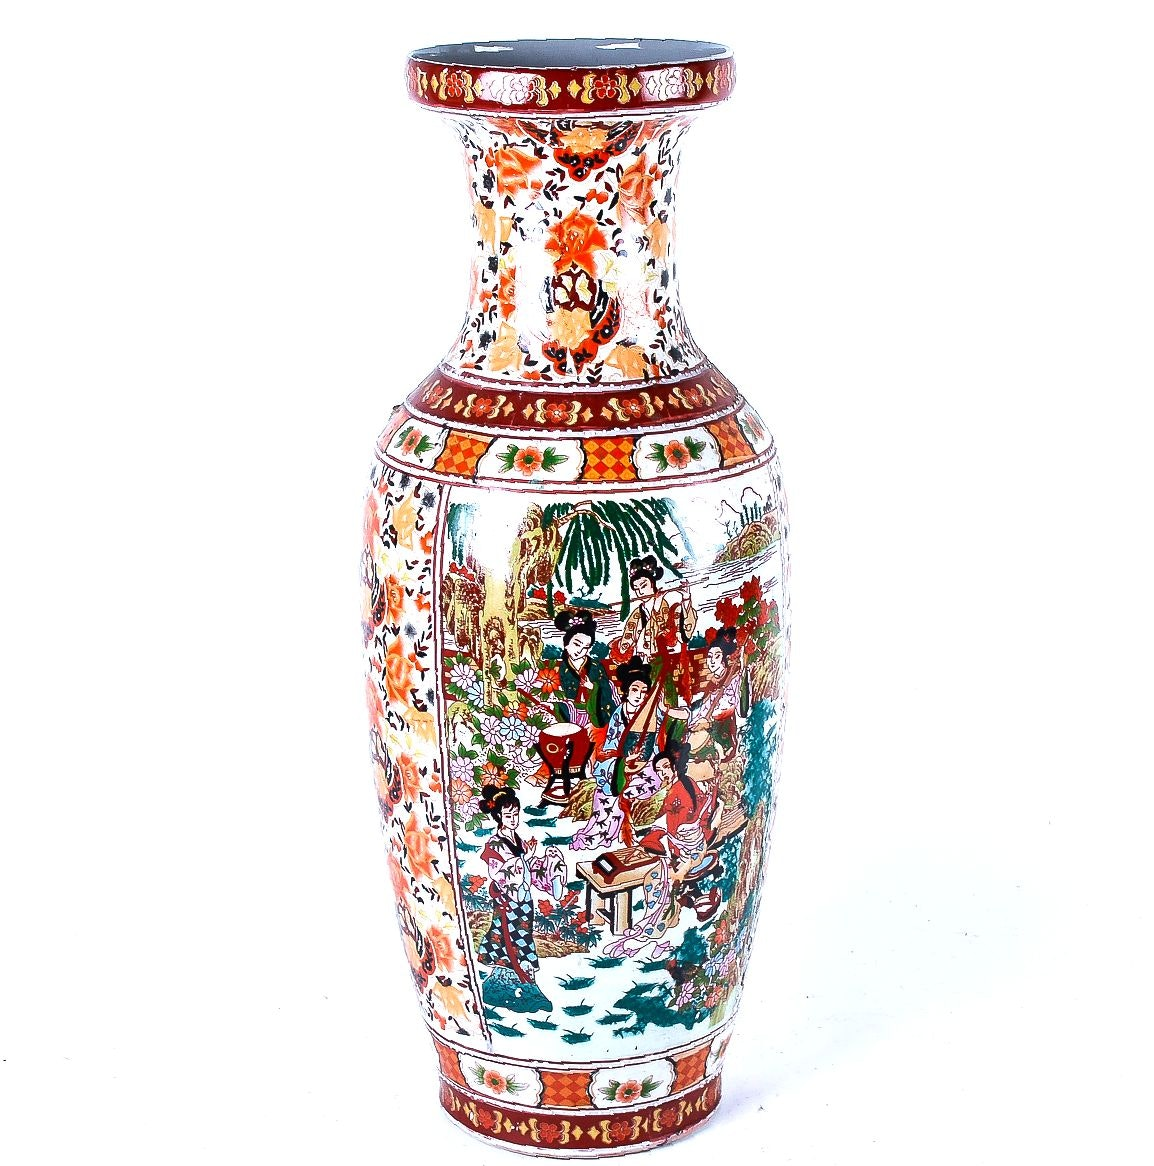 Red and Orange Chinese Porcelain Vase with Floral Motif